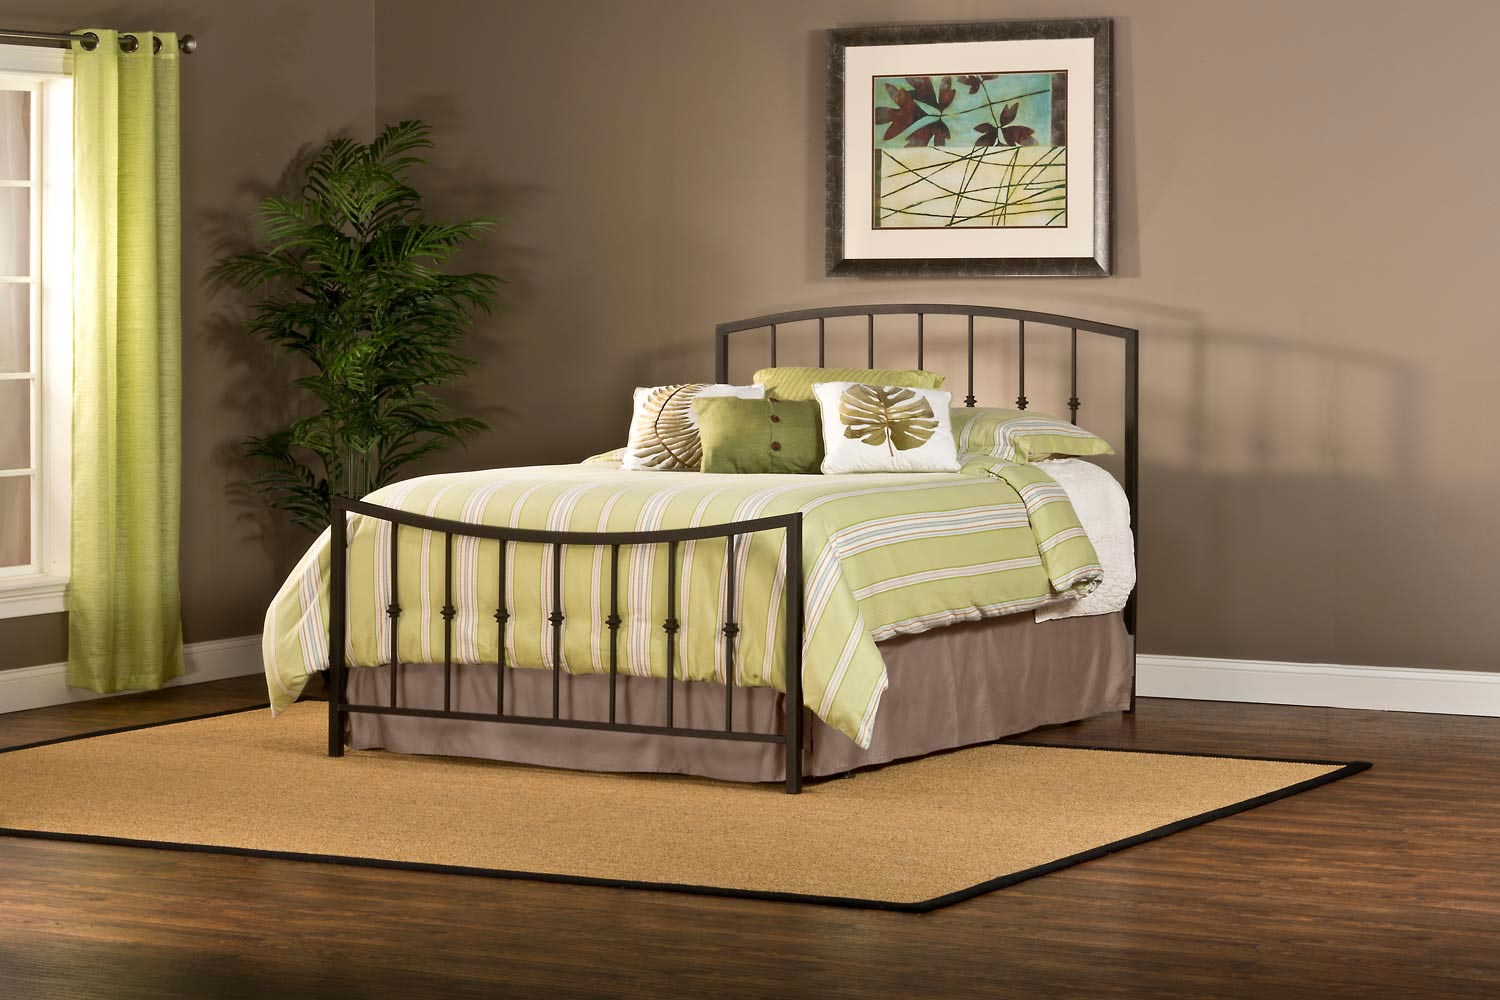 Hillsdale Sausalito Bed - Gold Sparkle